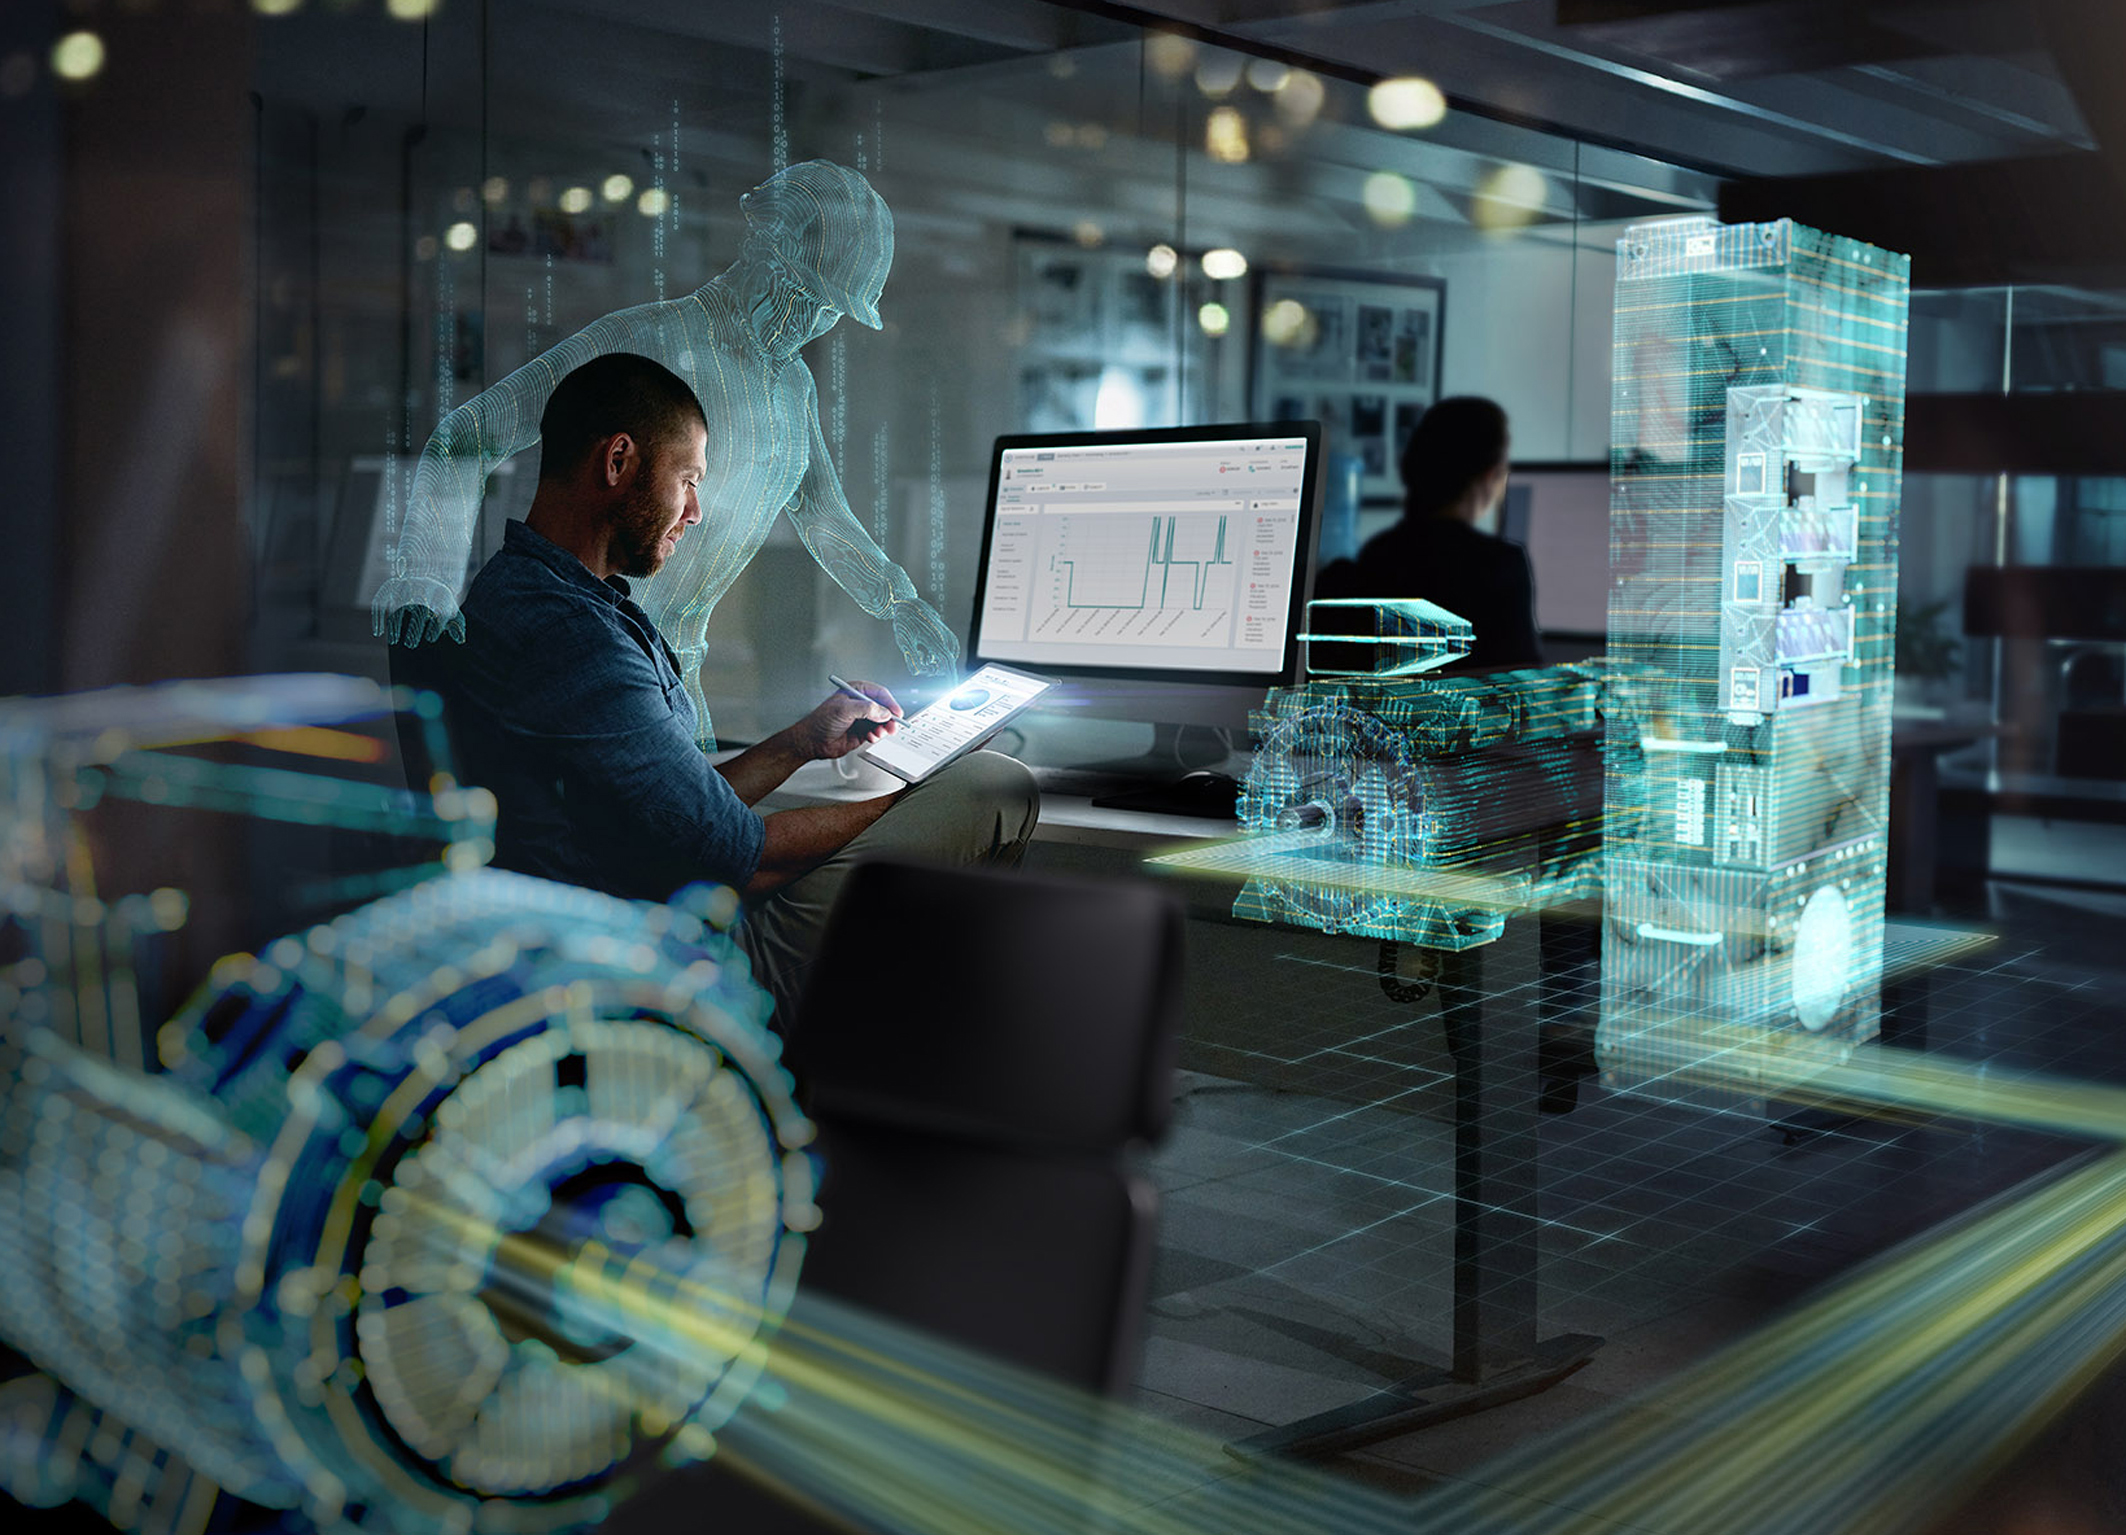 Sidrive IQ from Siemens provides a digital platform enabling the evaluation and utilization of data gathered from drive systems. Picture: Siemens